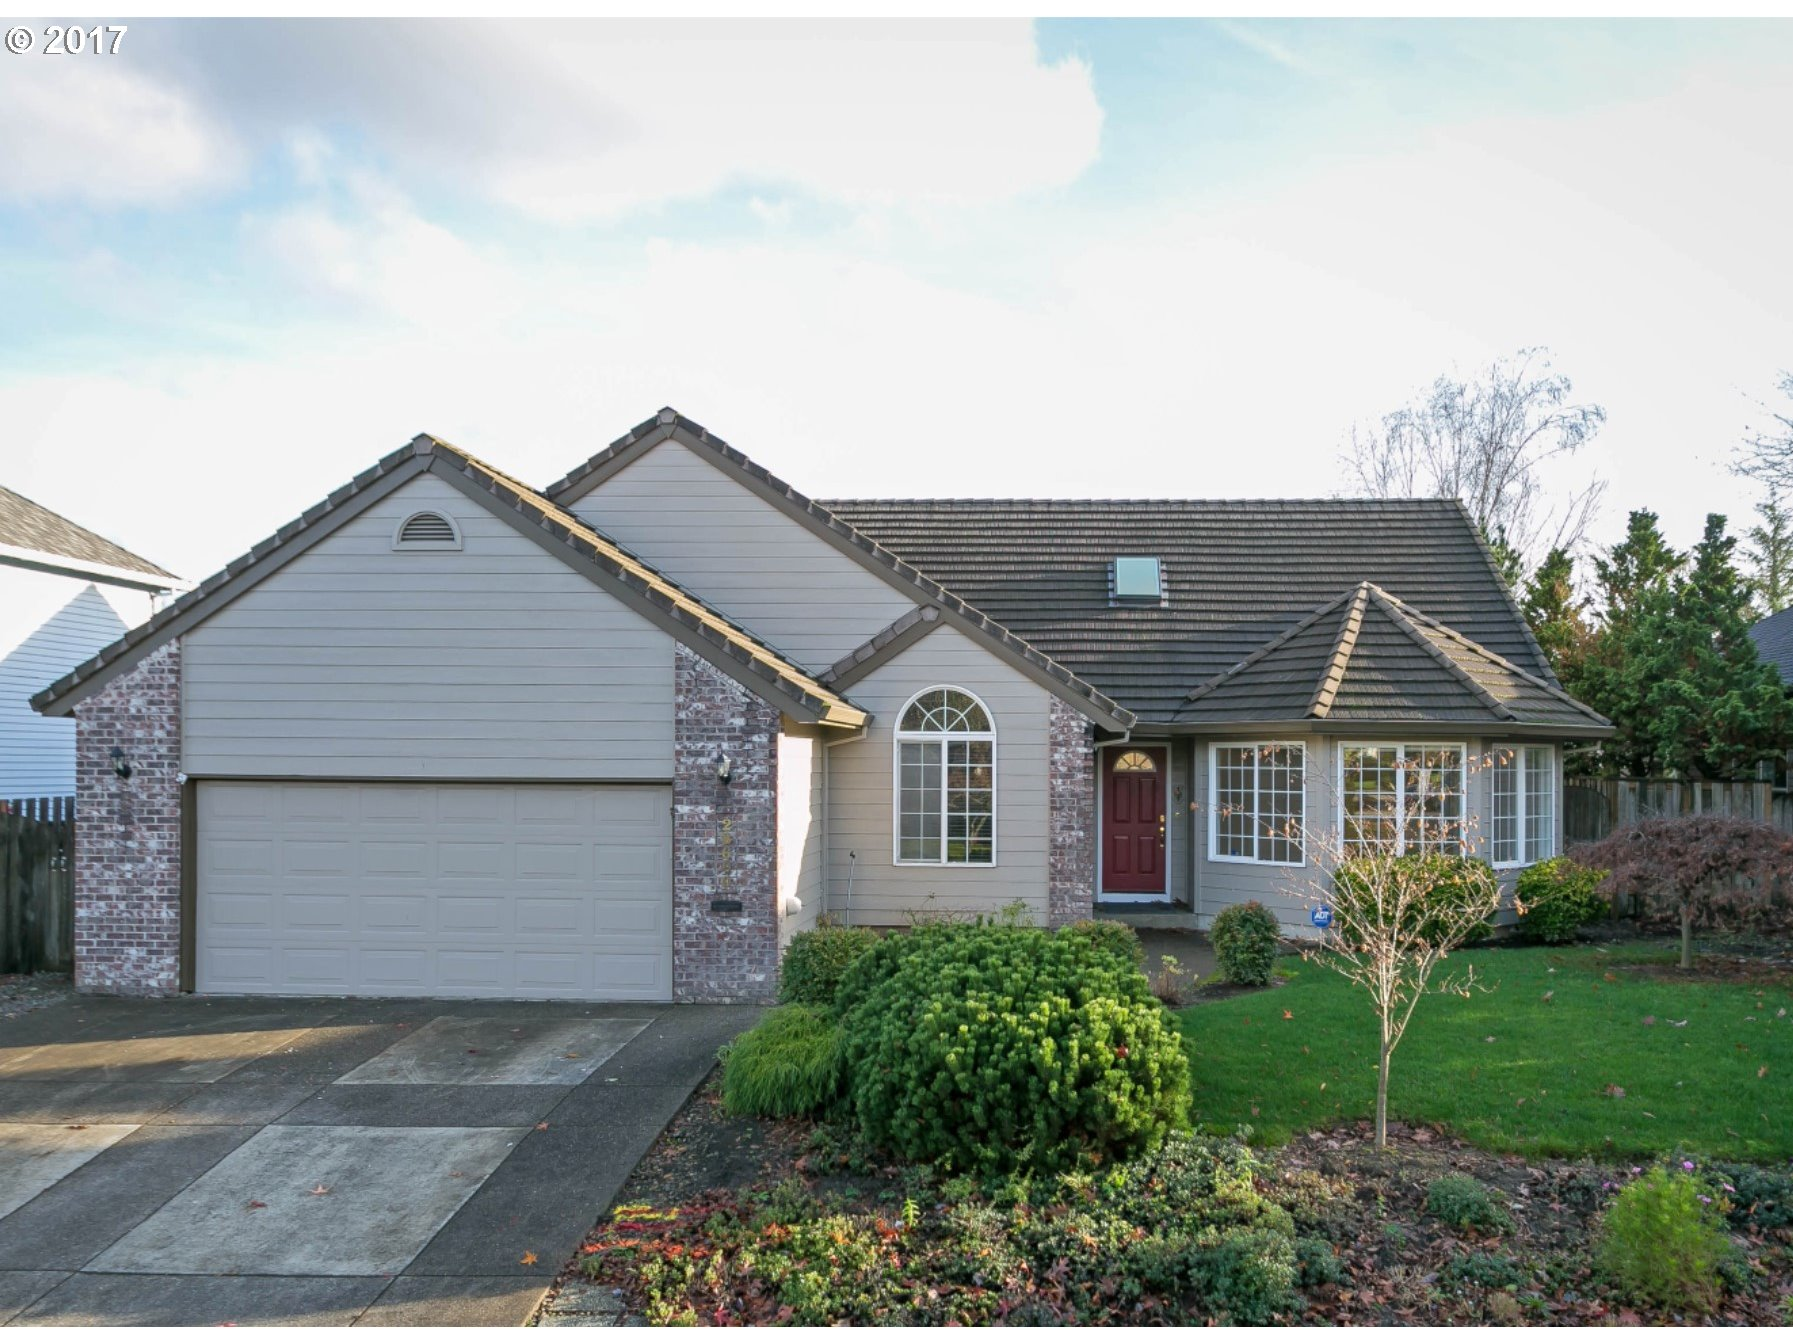 1845 sq. ft 3 bedrooms 2 bathrooms  House For Sale,Wilsonville, OR